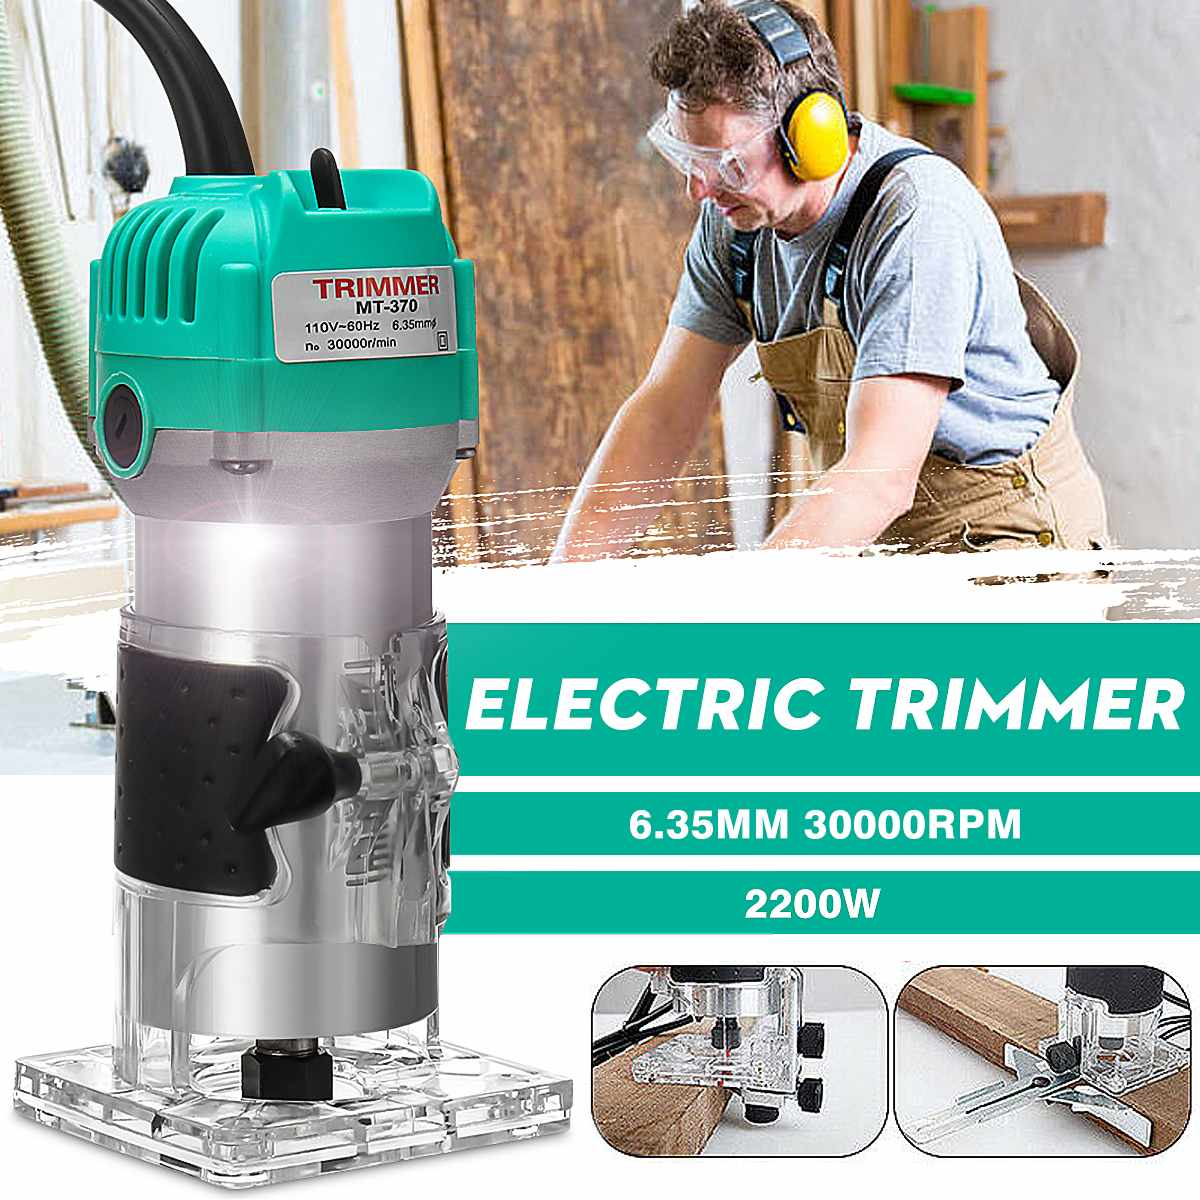 30000RMP 2200W 1/4 Inch Corded Wood Laminate Router Electric Hand Trimmer Woodworking Power Tool With 60inch Cable30000RMP 2200W 1/4 Inch Corded Wood Laminate Router Electric Hand Trimmer Woodworking Power Tool With 60inch Cable